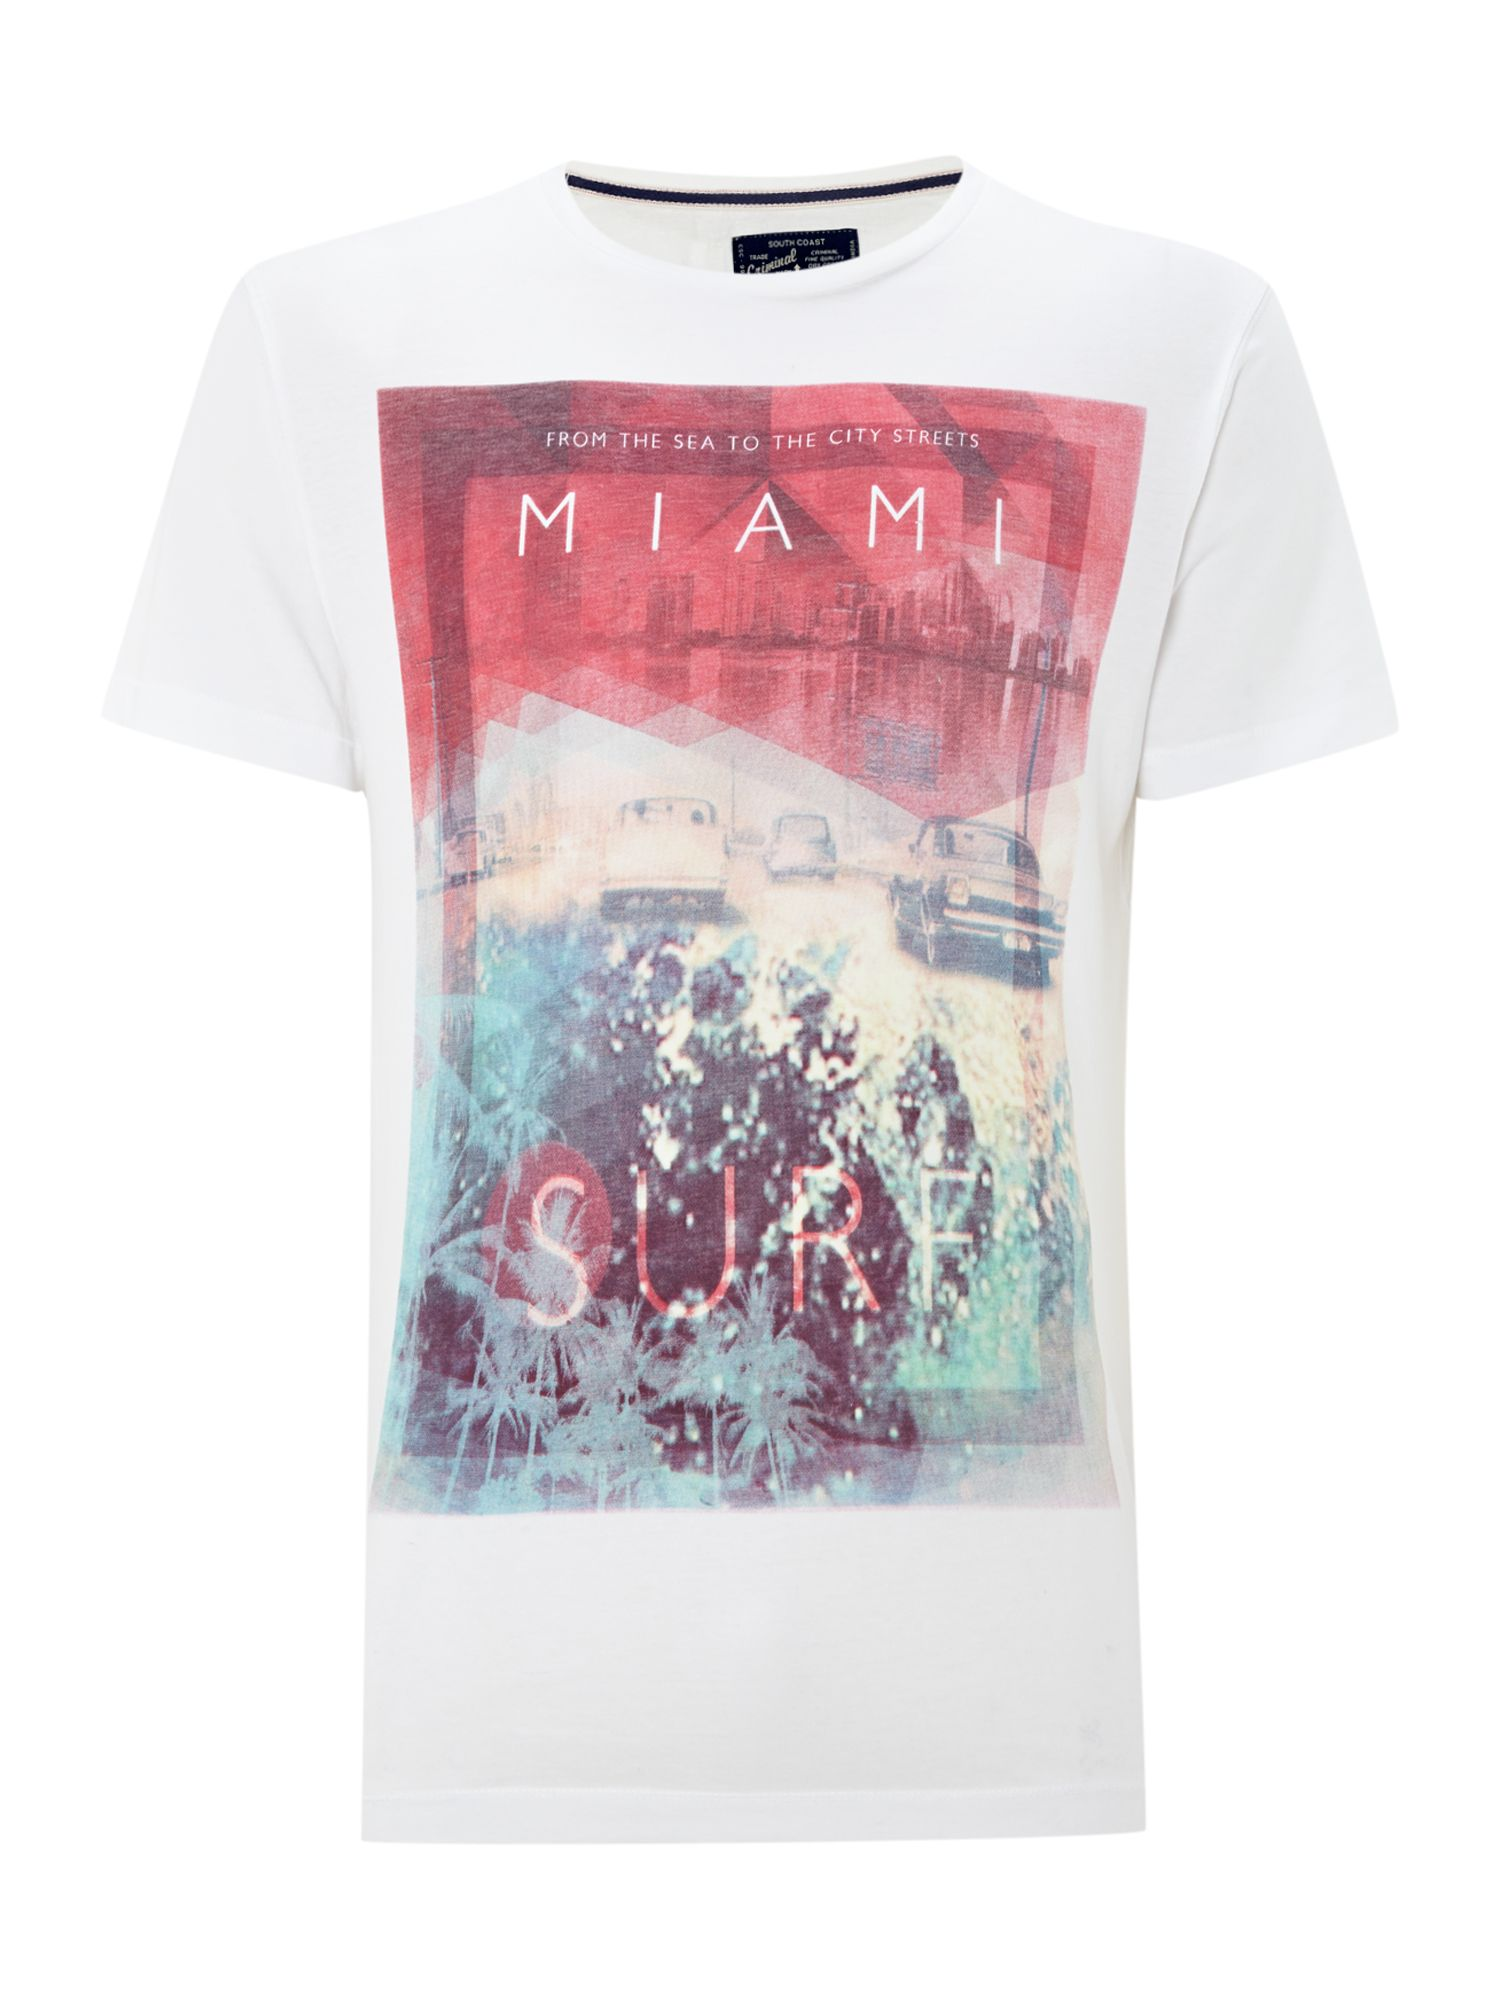 Miami surf graphic tee